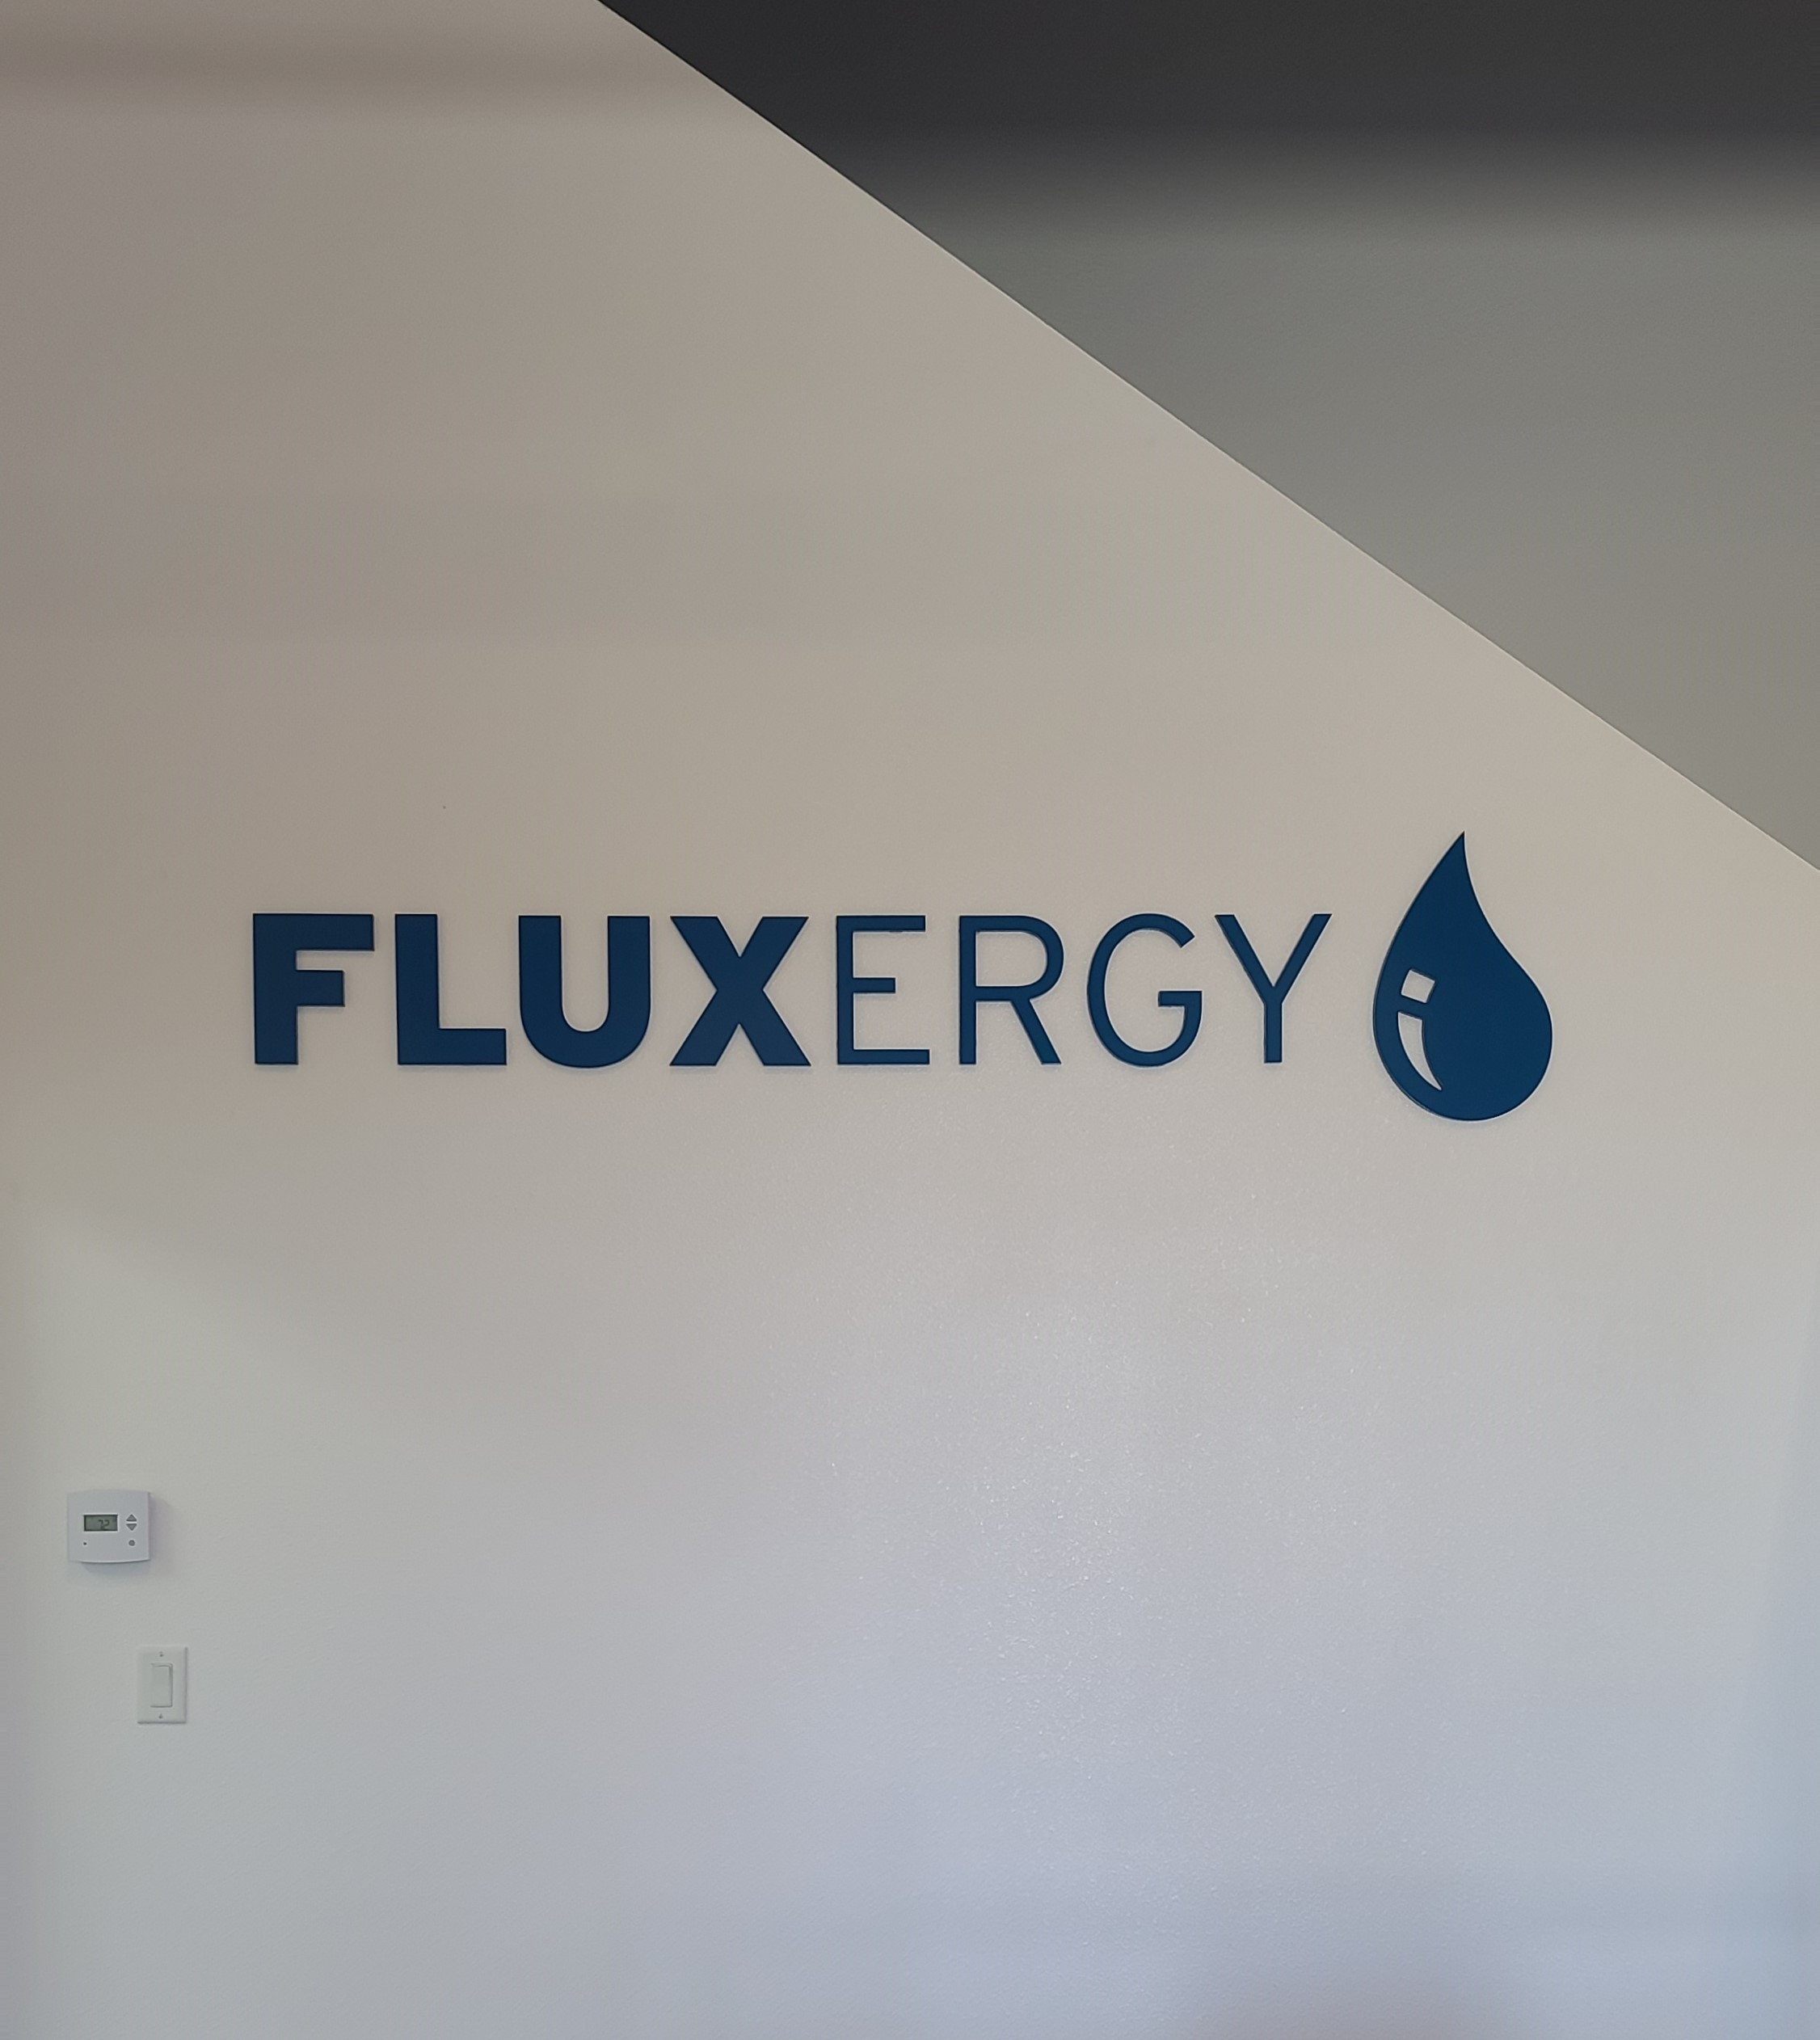 This is an indoor dimensional letter office sign for Fluxergy in Irvine, as part of the comprehensive sign package.